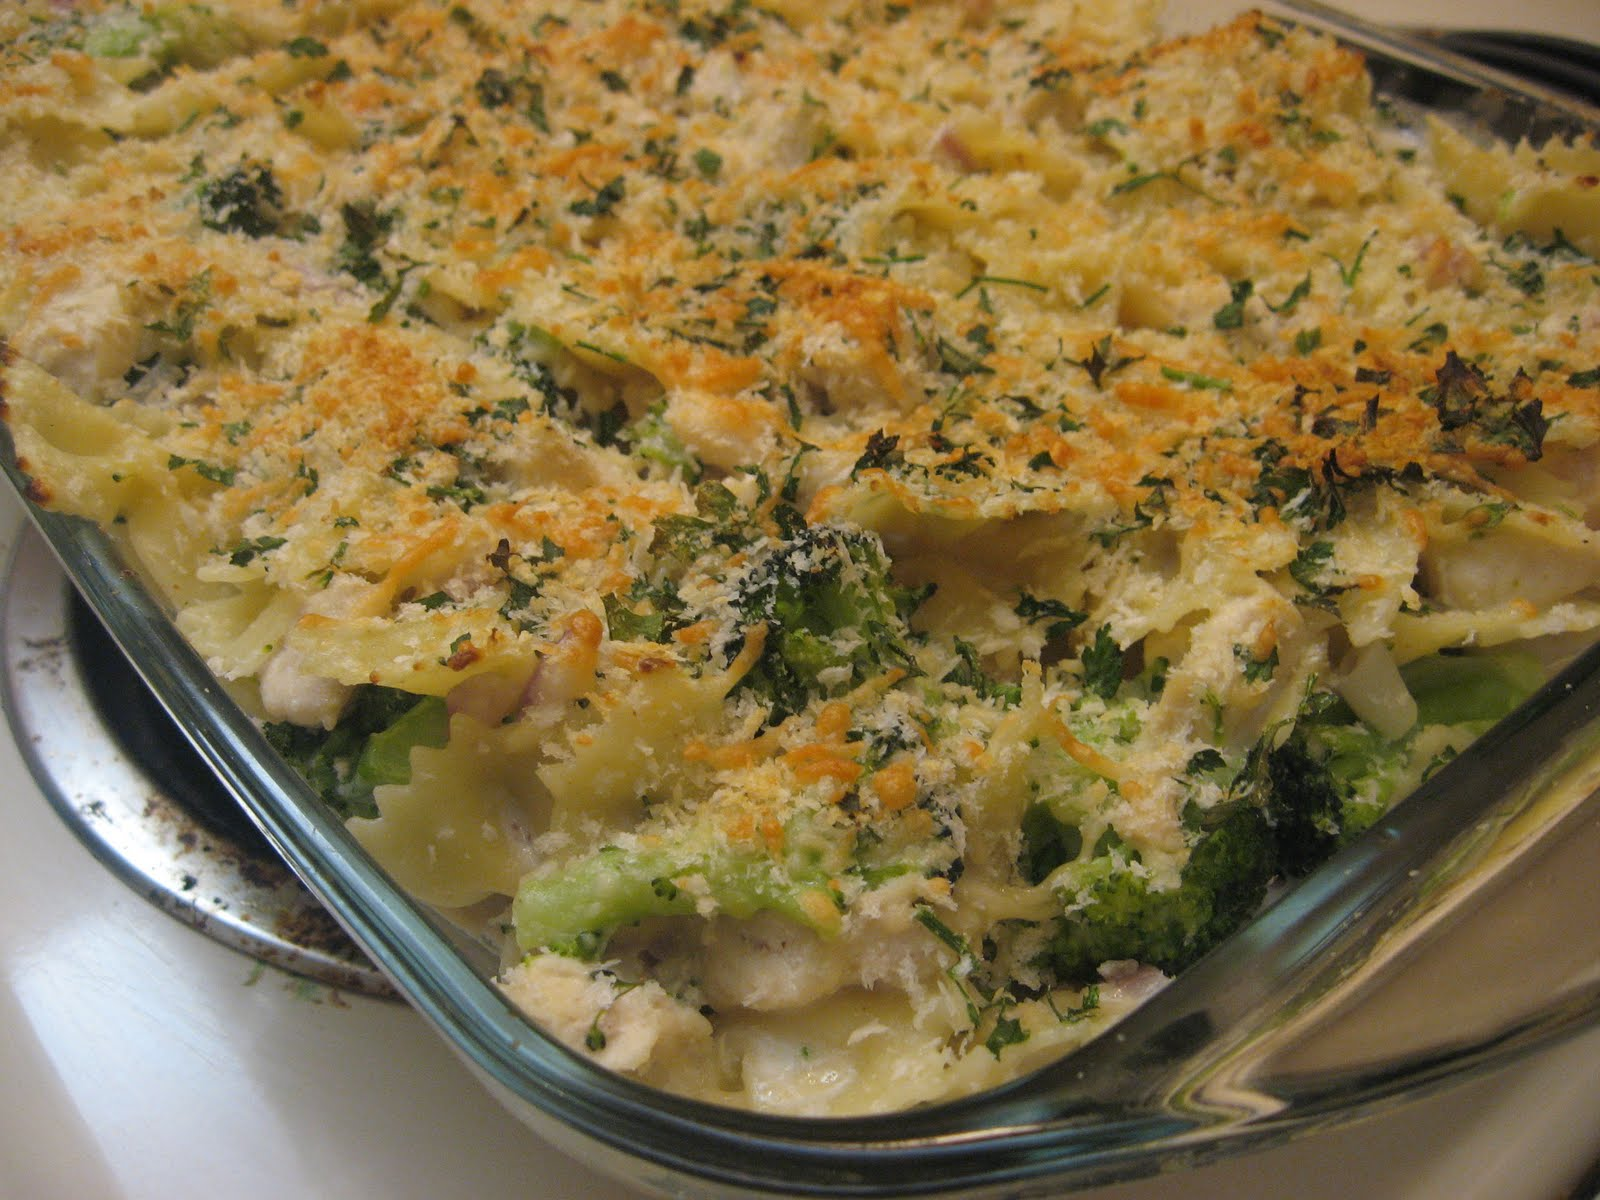 What's for Dinner?: Chicken and Broccoli Casserole